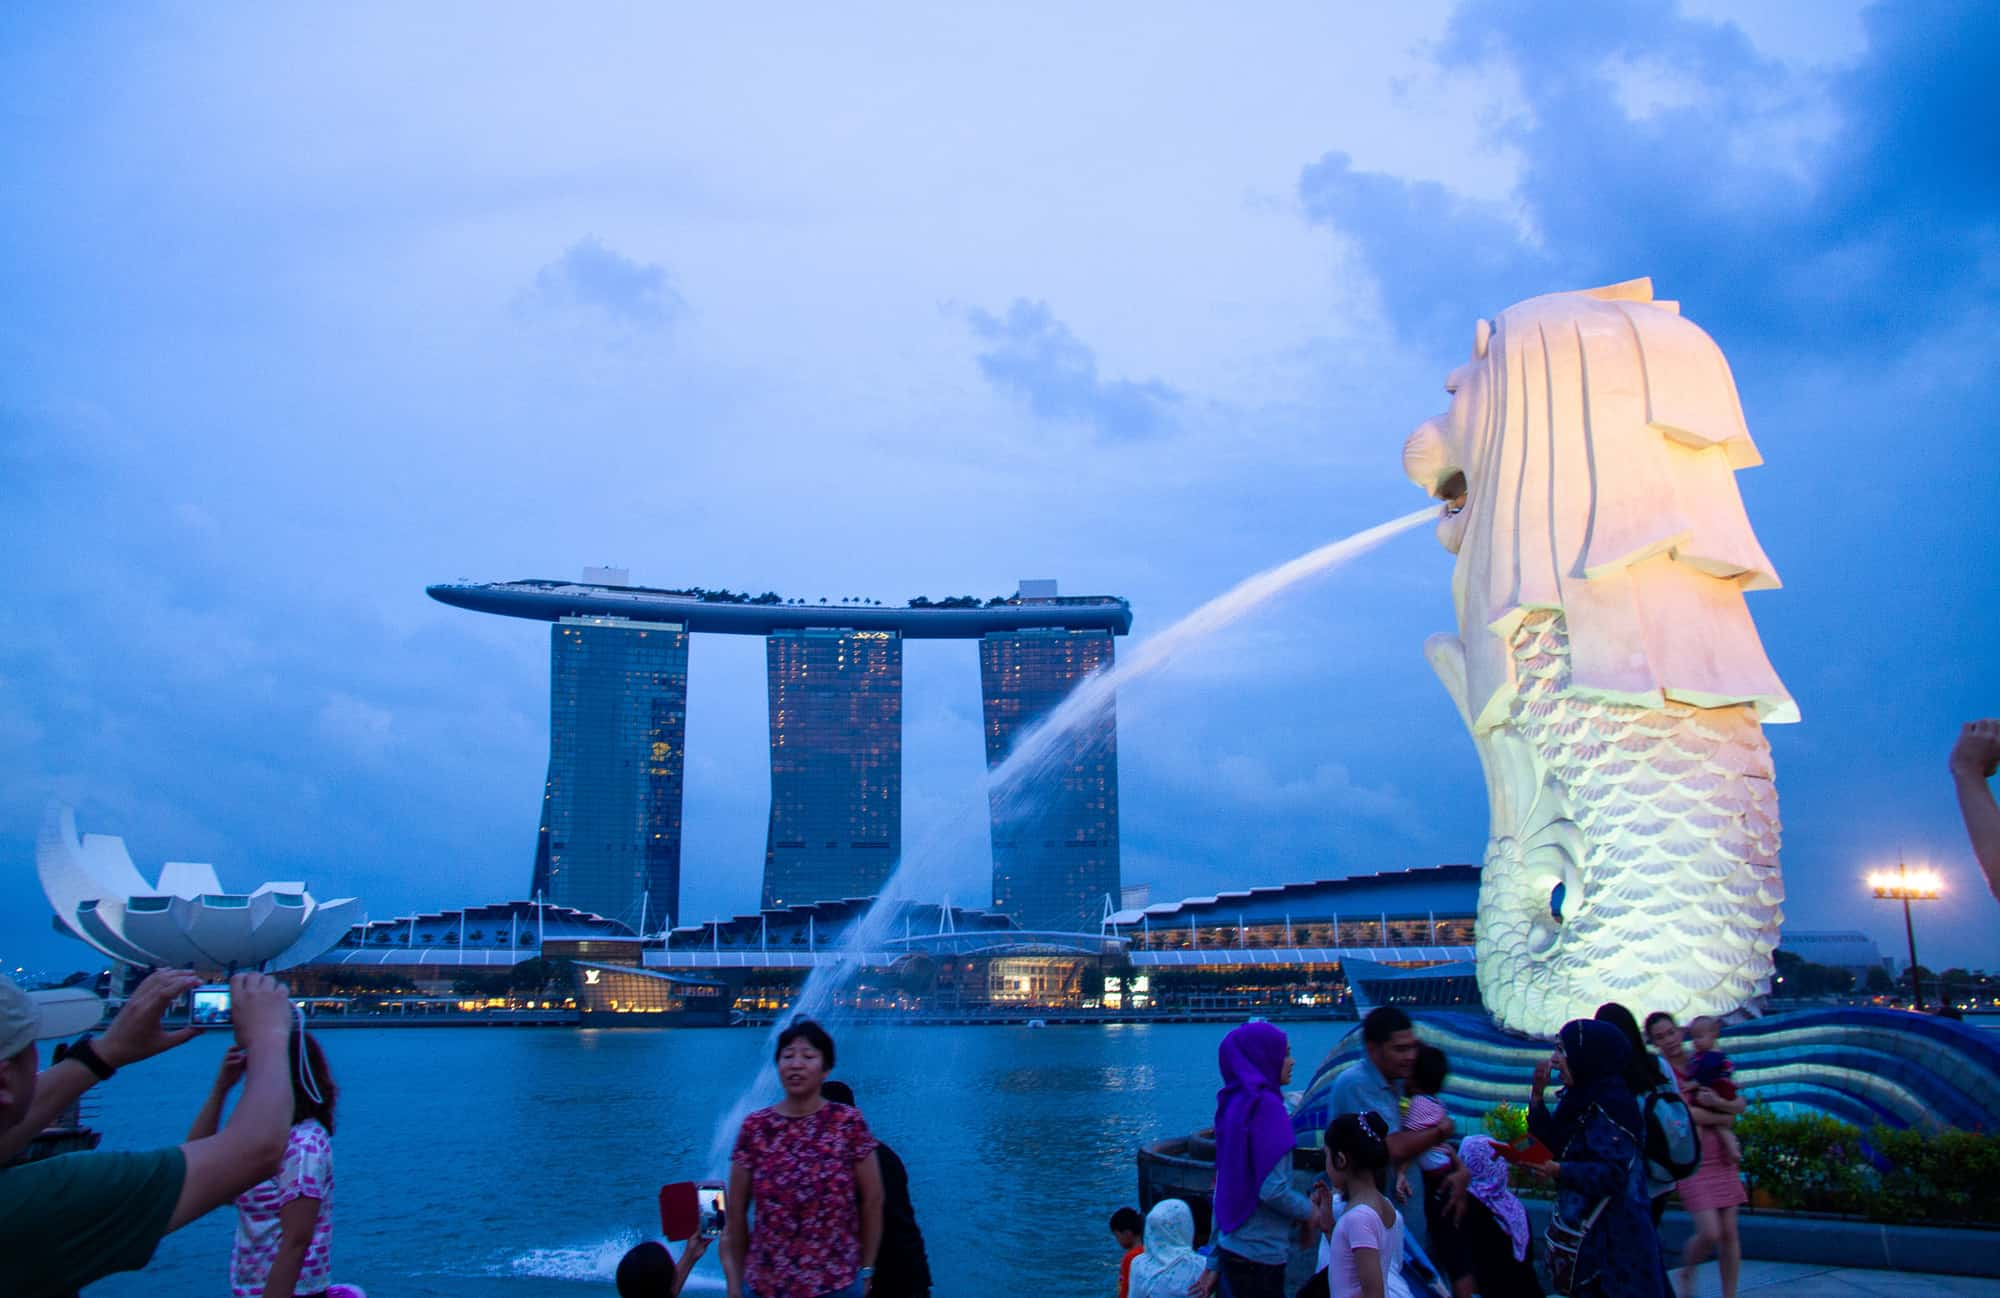 Singapore Merlion Spraying Water in the Harbour